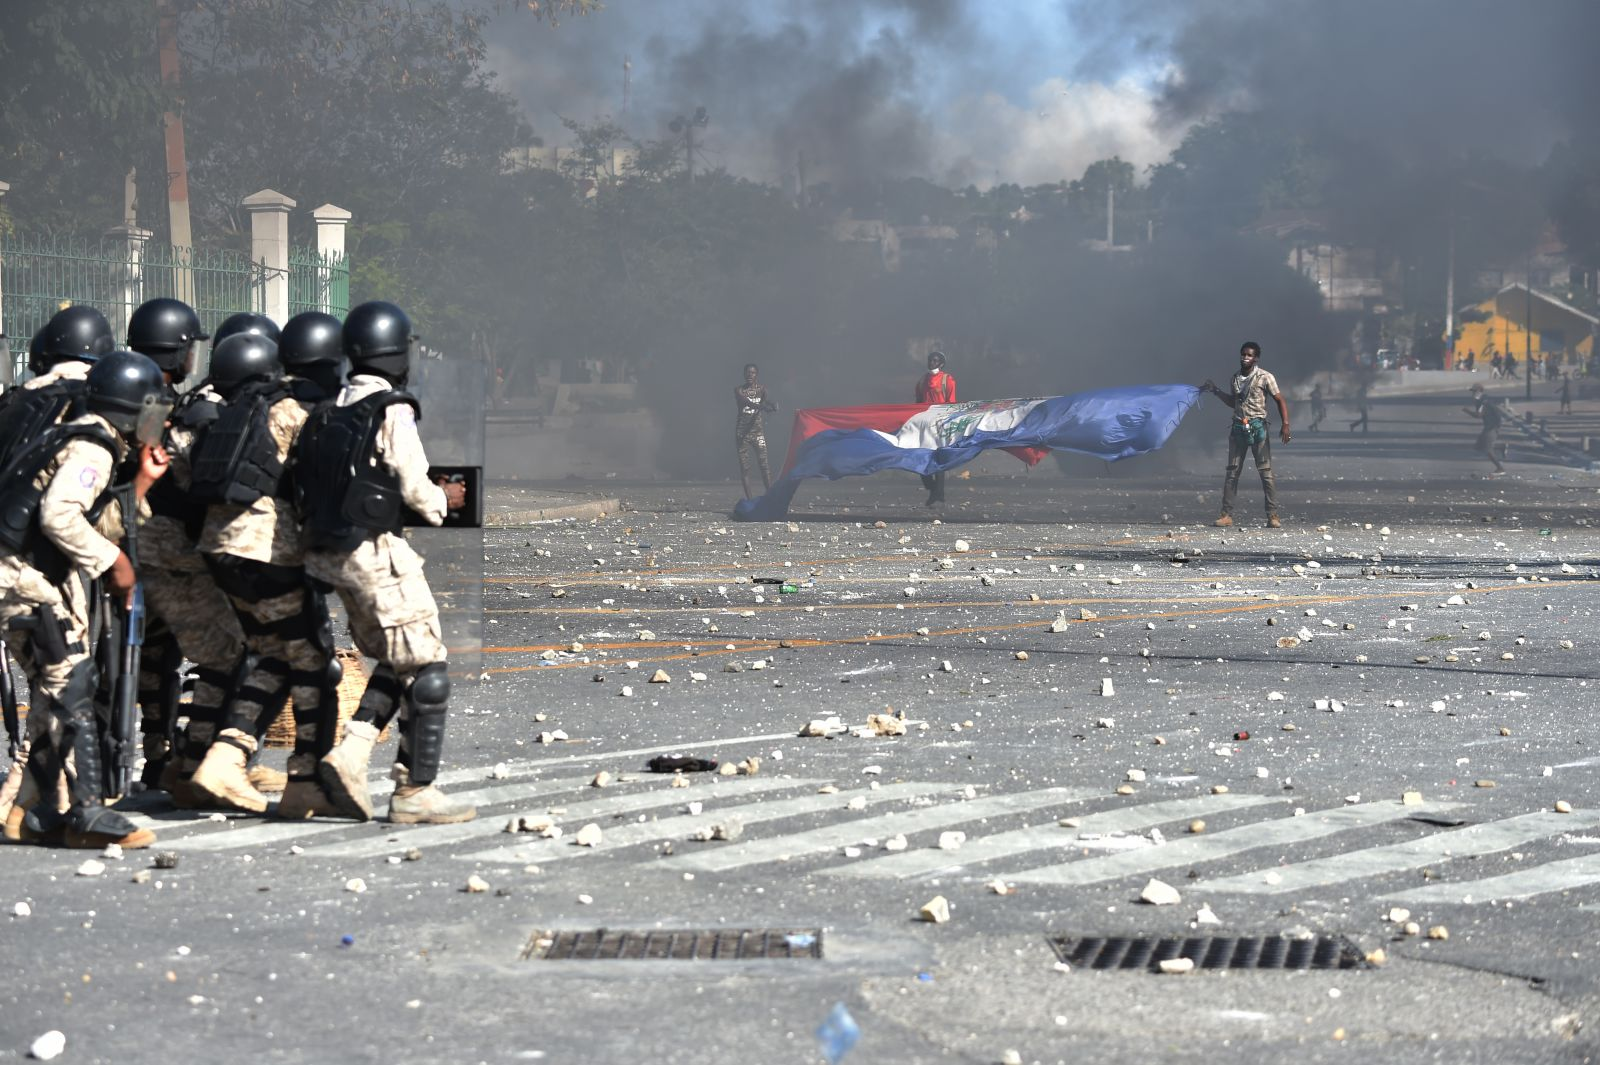 Police try to break up a protest in front of the National Palace in Haiti capital Port-au-Prince